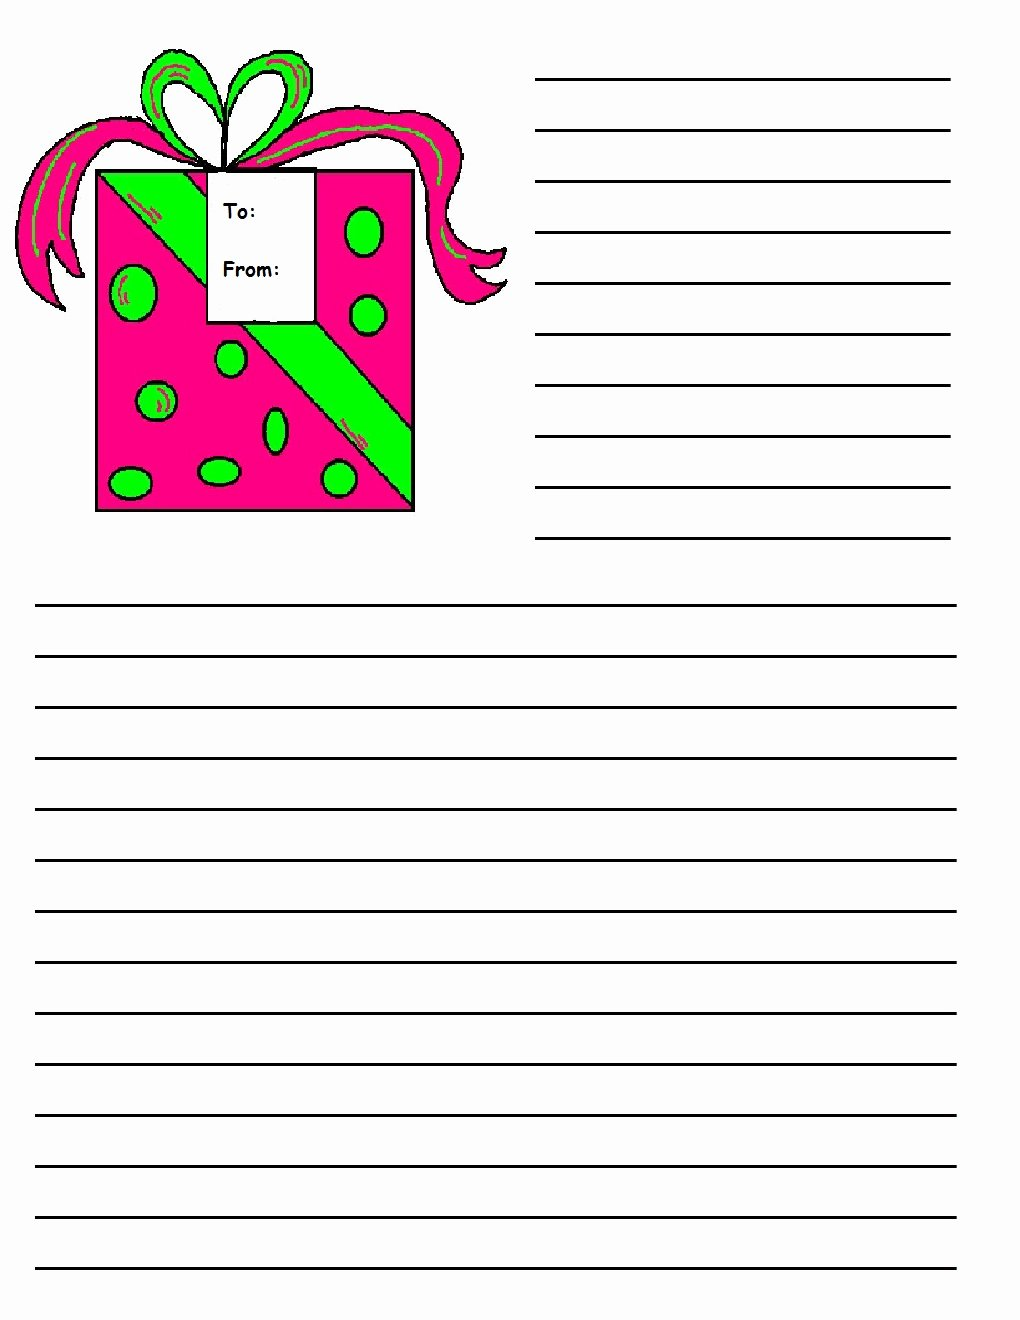 Free Printable Writing Paper Fresh Christmas Printable Writing Paper